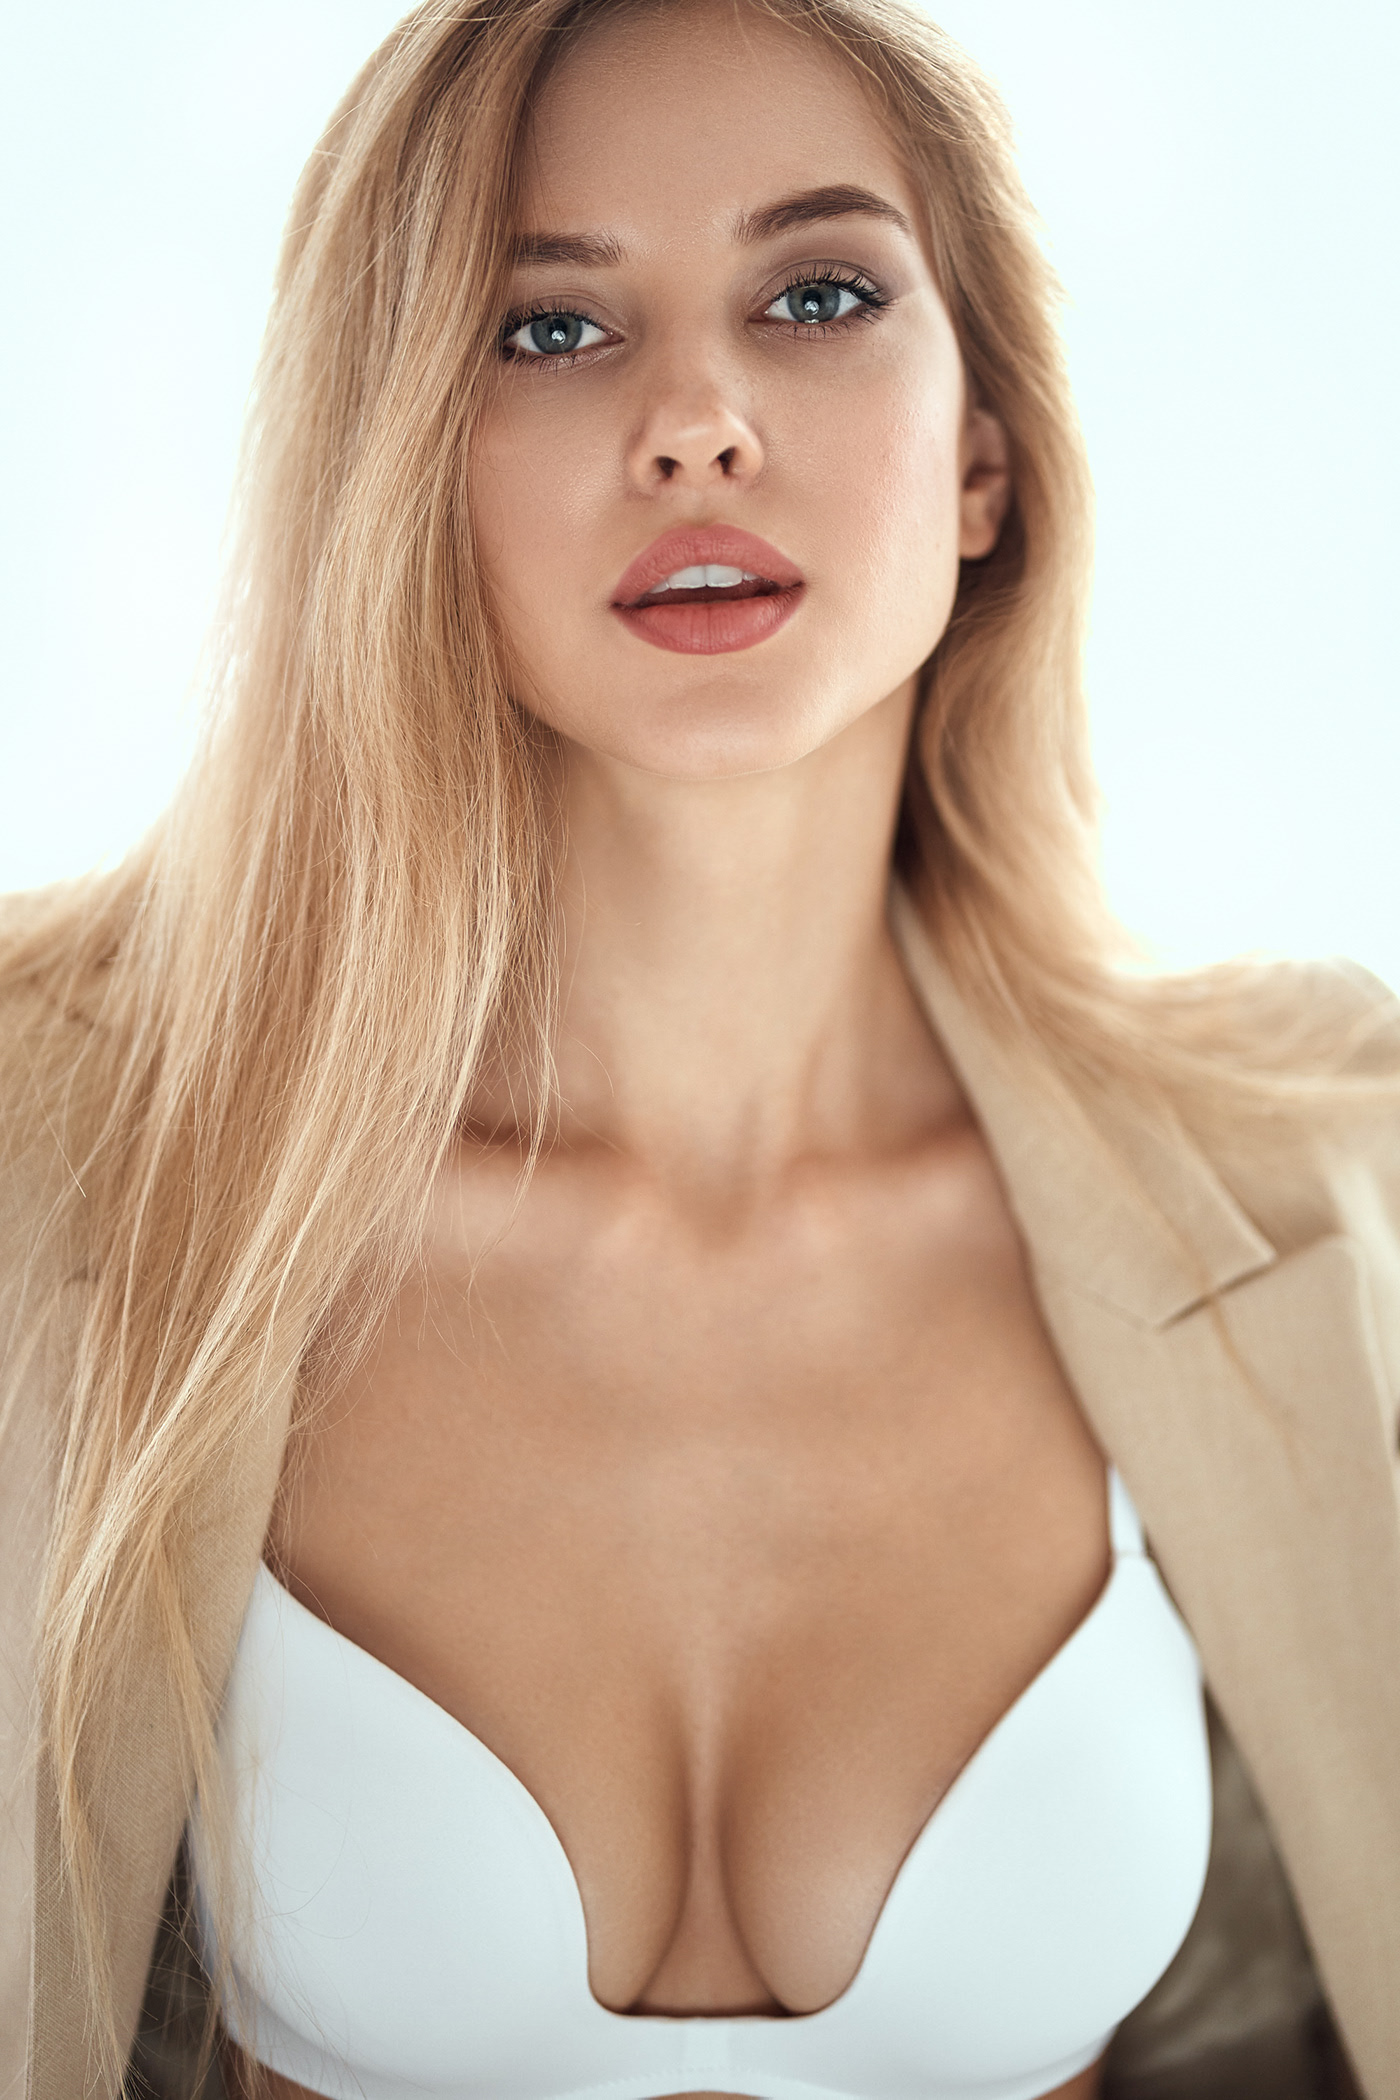 People 1400x2100 Alonso Aydar women blonde long hair suits jacket bra brown clothing makeup lipstick looking at viewer simple background white background Ekaterina Tebekina juicy lips coats portrait open clothes cleavage